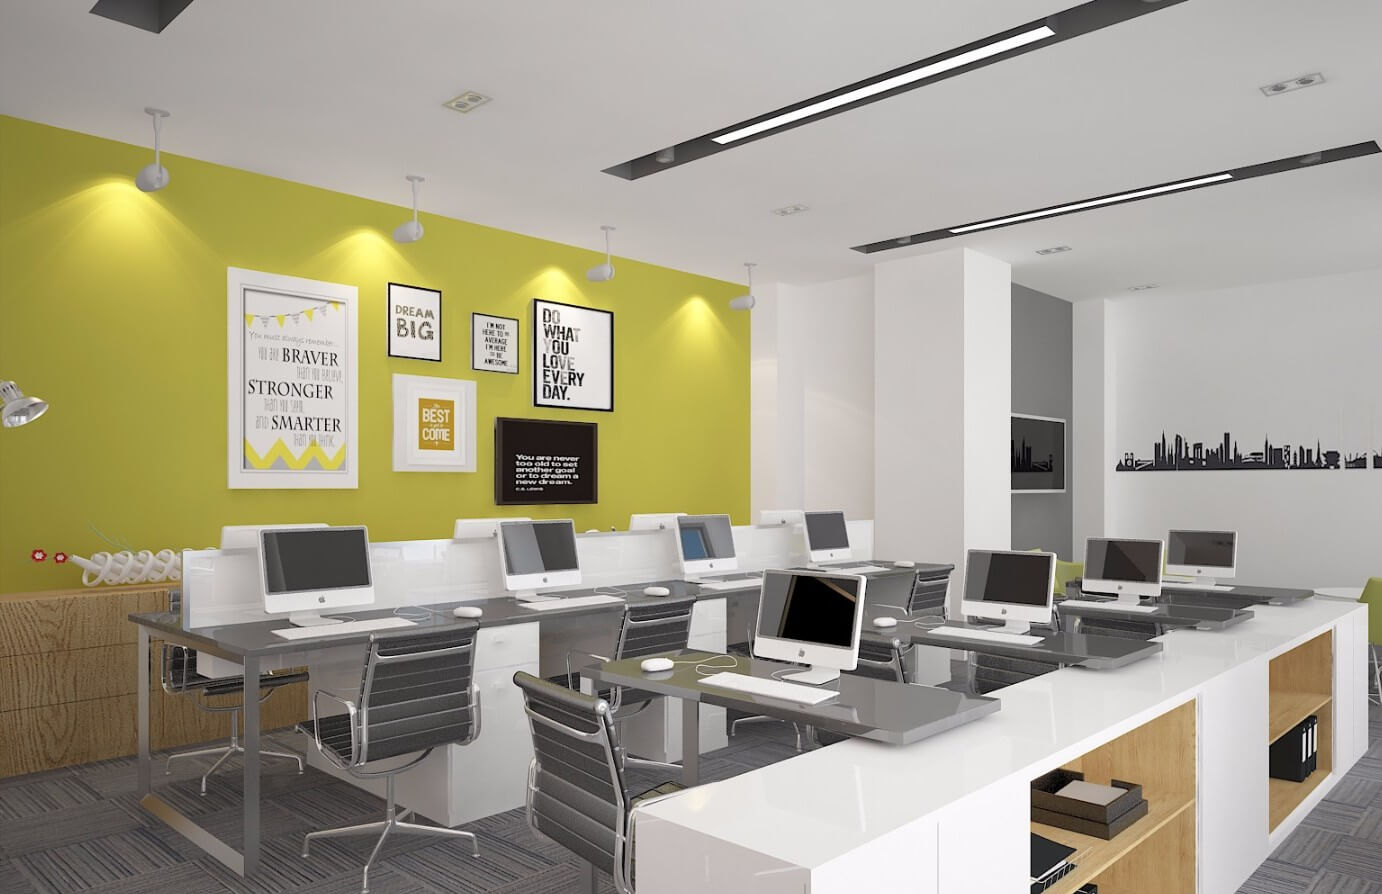 How to Renovate Your Office Space Designs?